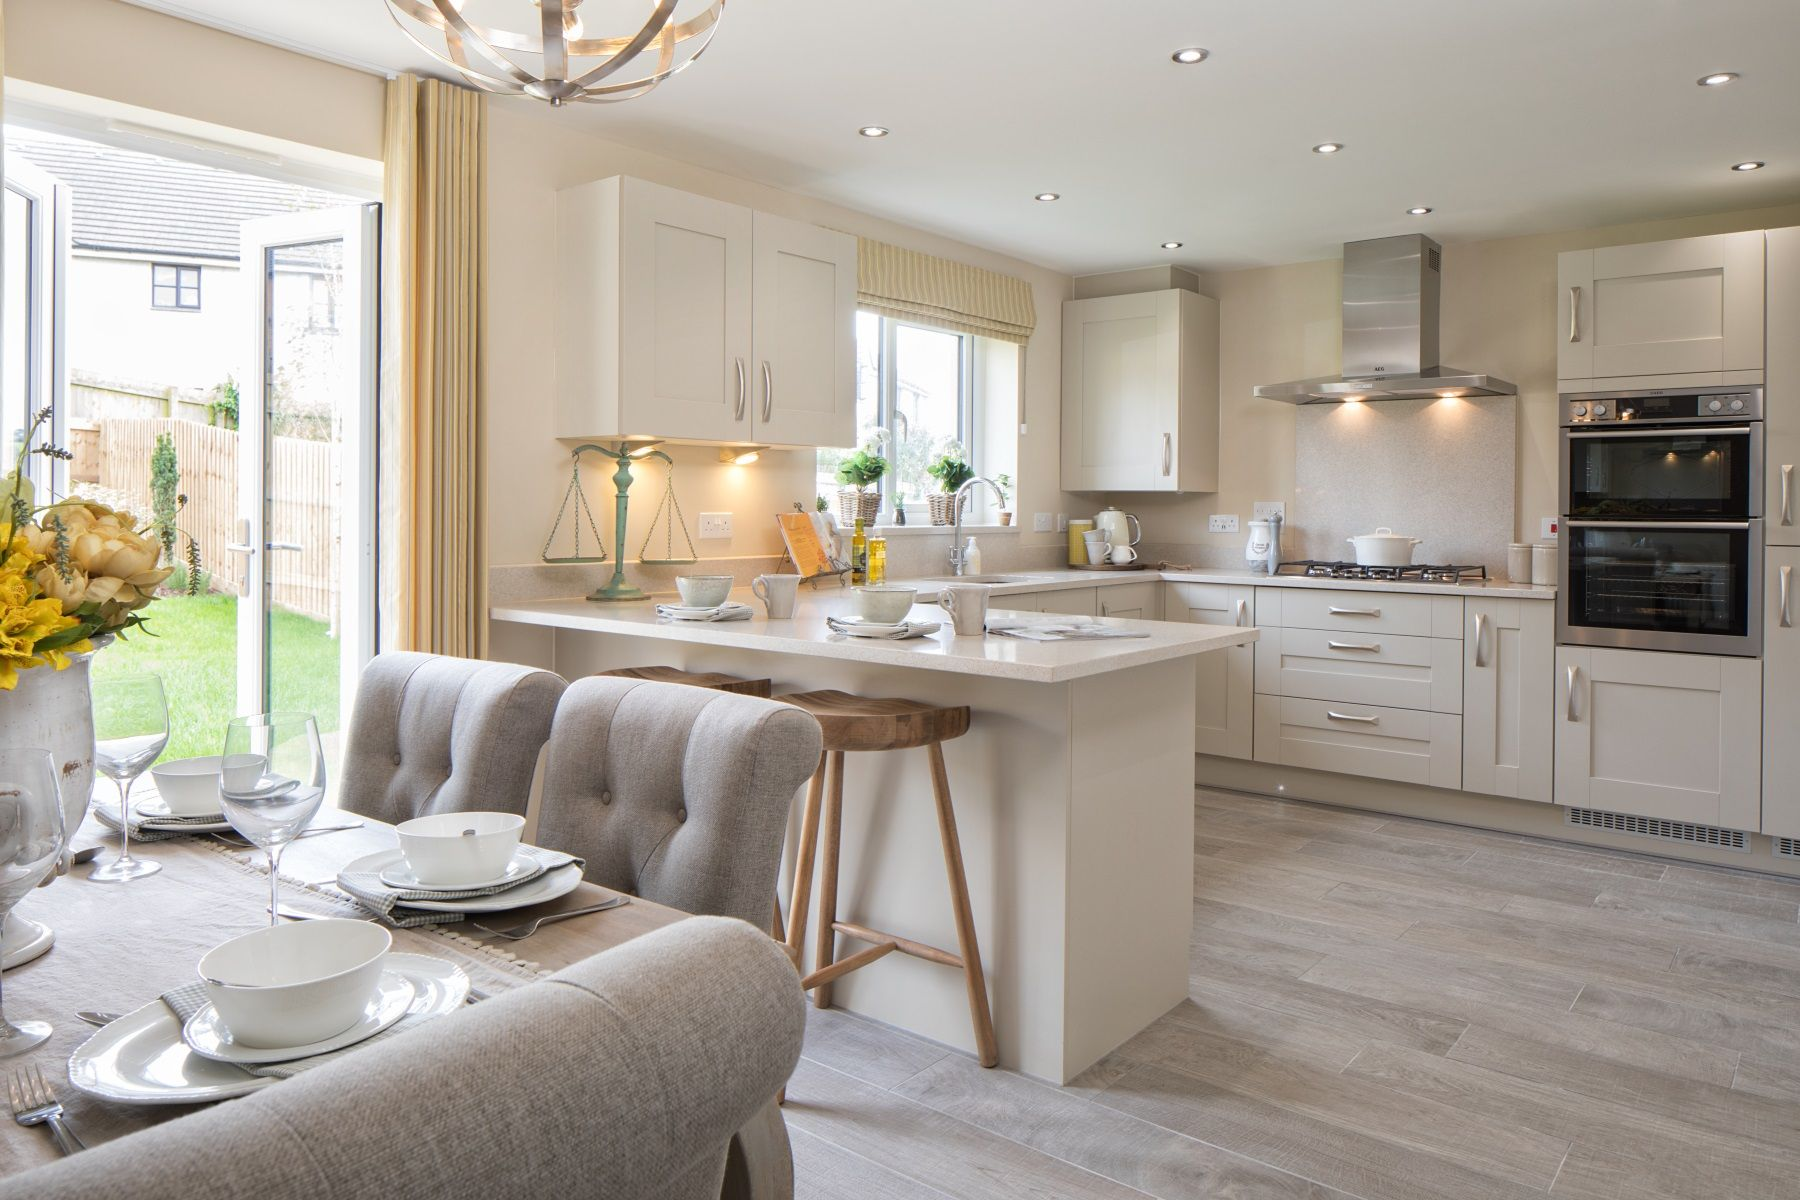 TW Exeter - Plumb Park - Midford example kitchen